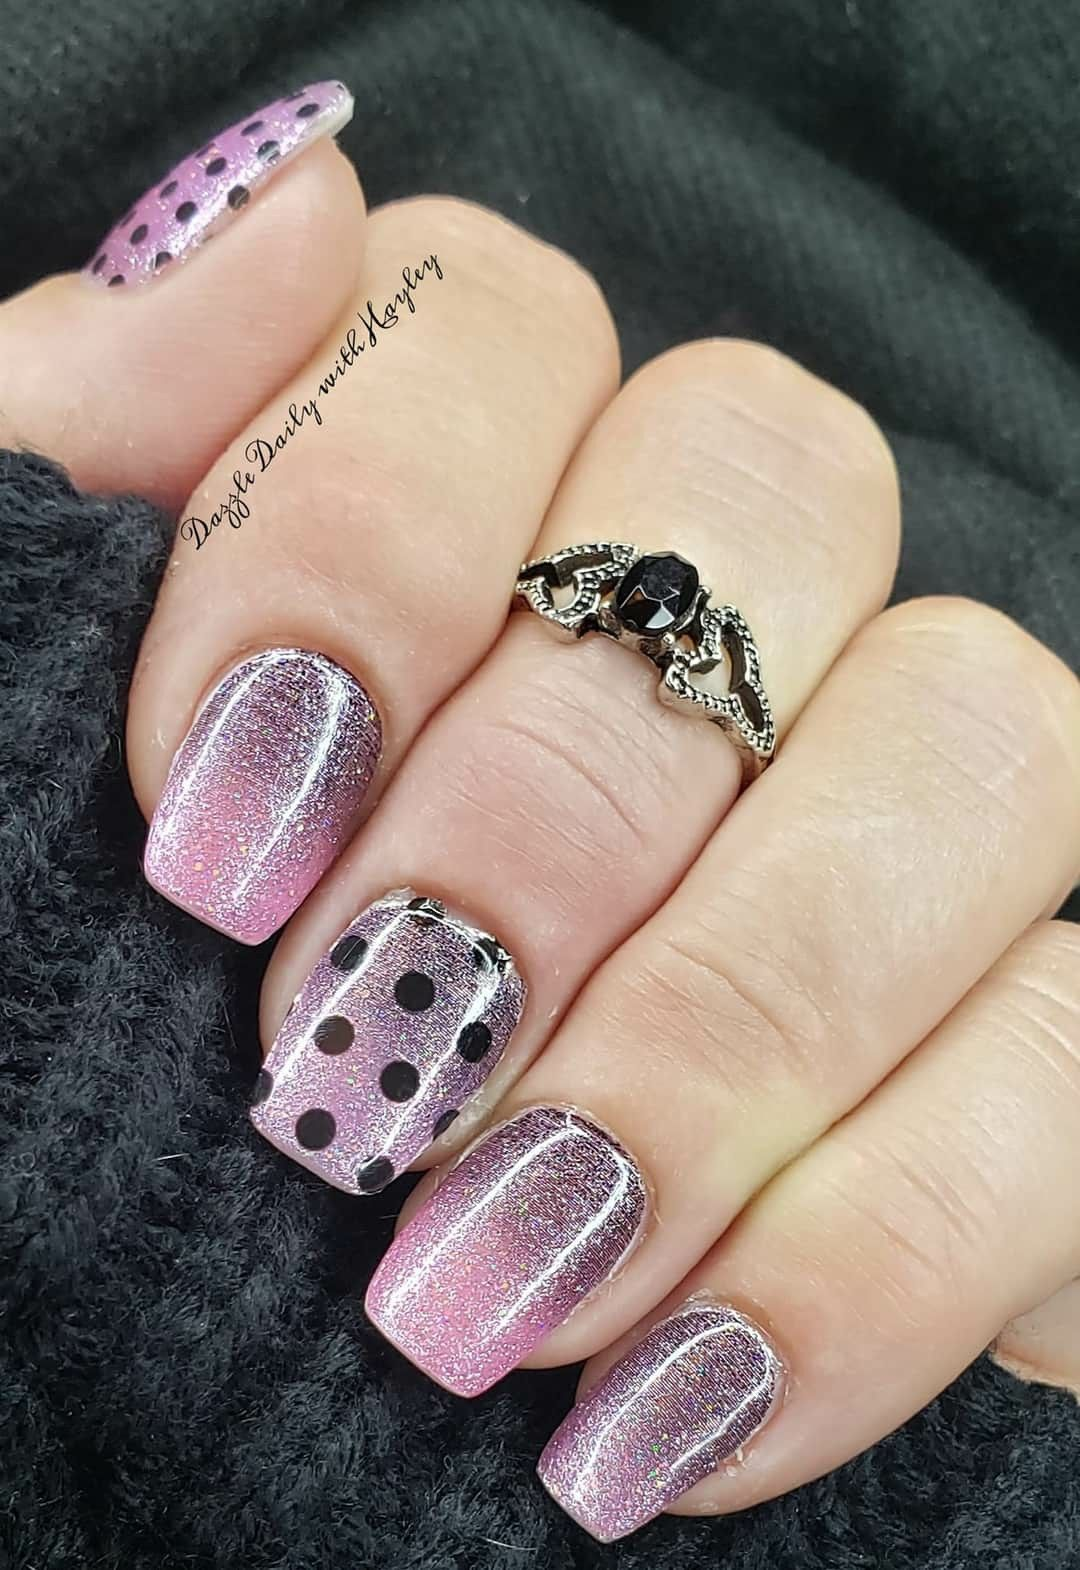 Pin By Lenka Keprtova On Color Street In 2020 Color Street Nails Art Deco Nails Nail Jewelry